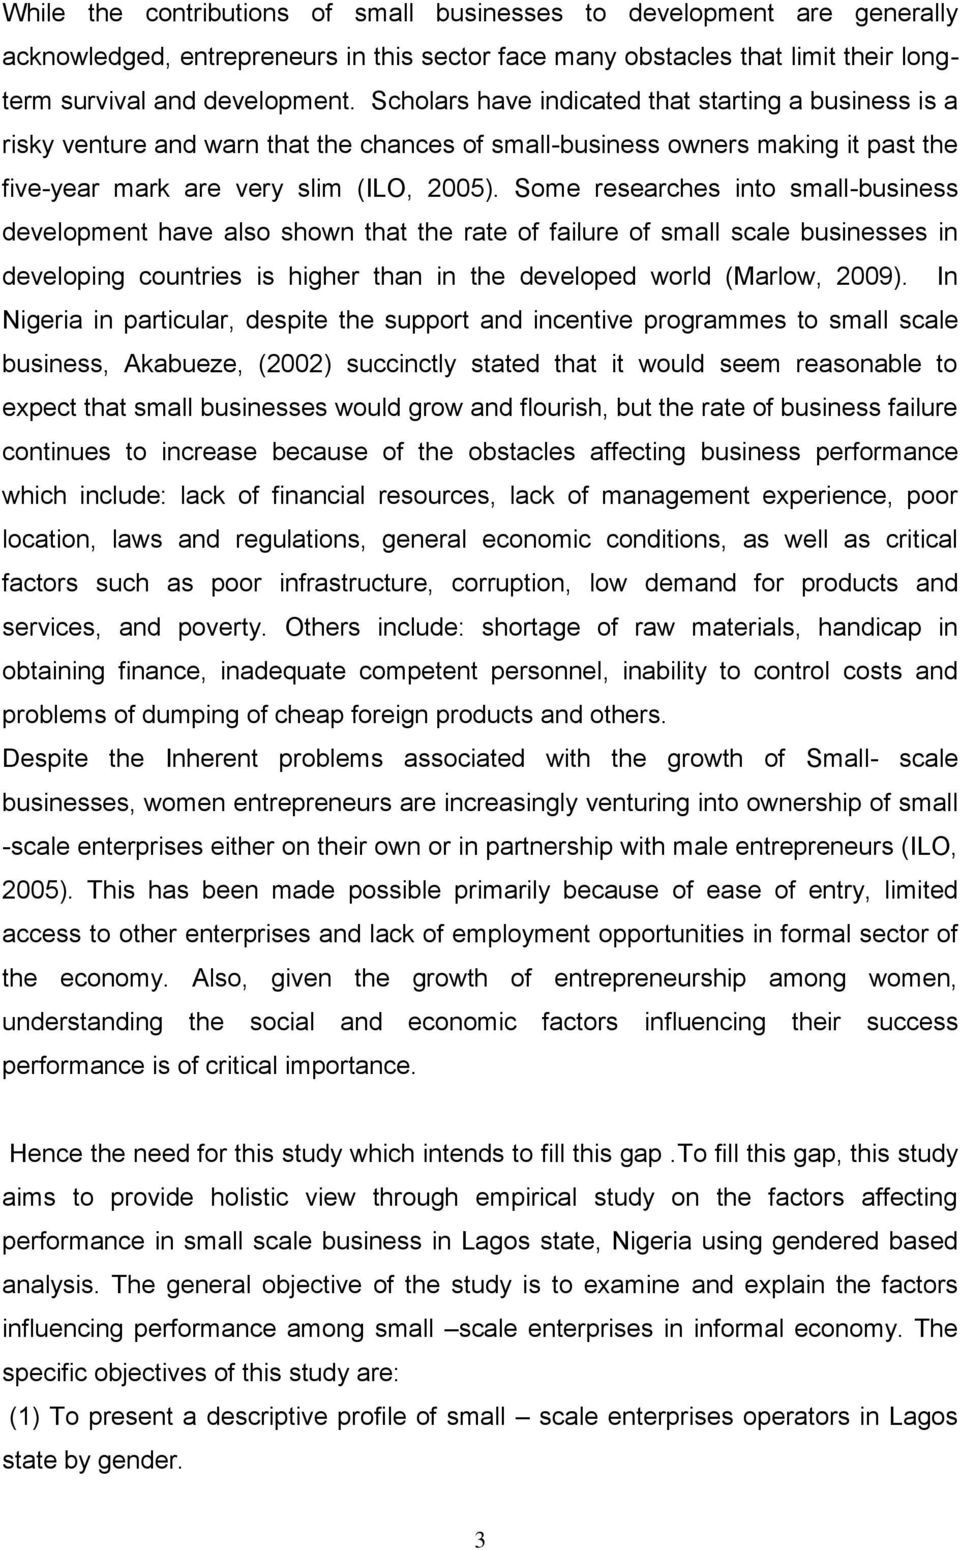 FACTORS AFFECTING SMALL-SCALE BUSINESS PERFORMANCE IN INFORMAL